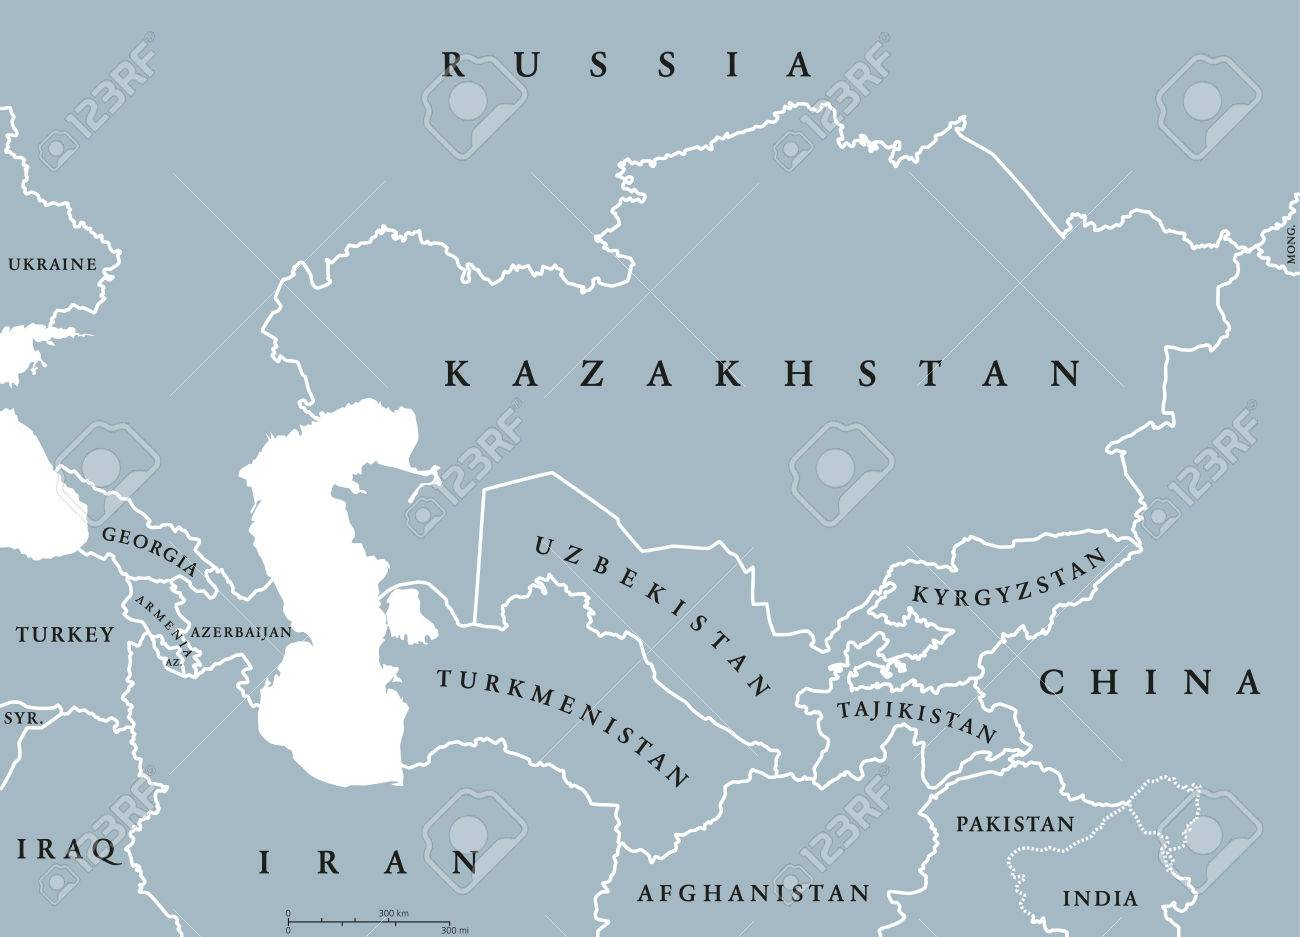 Caucasus And Central Asia Countries Political Map With National